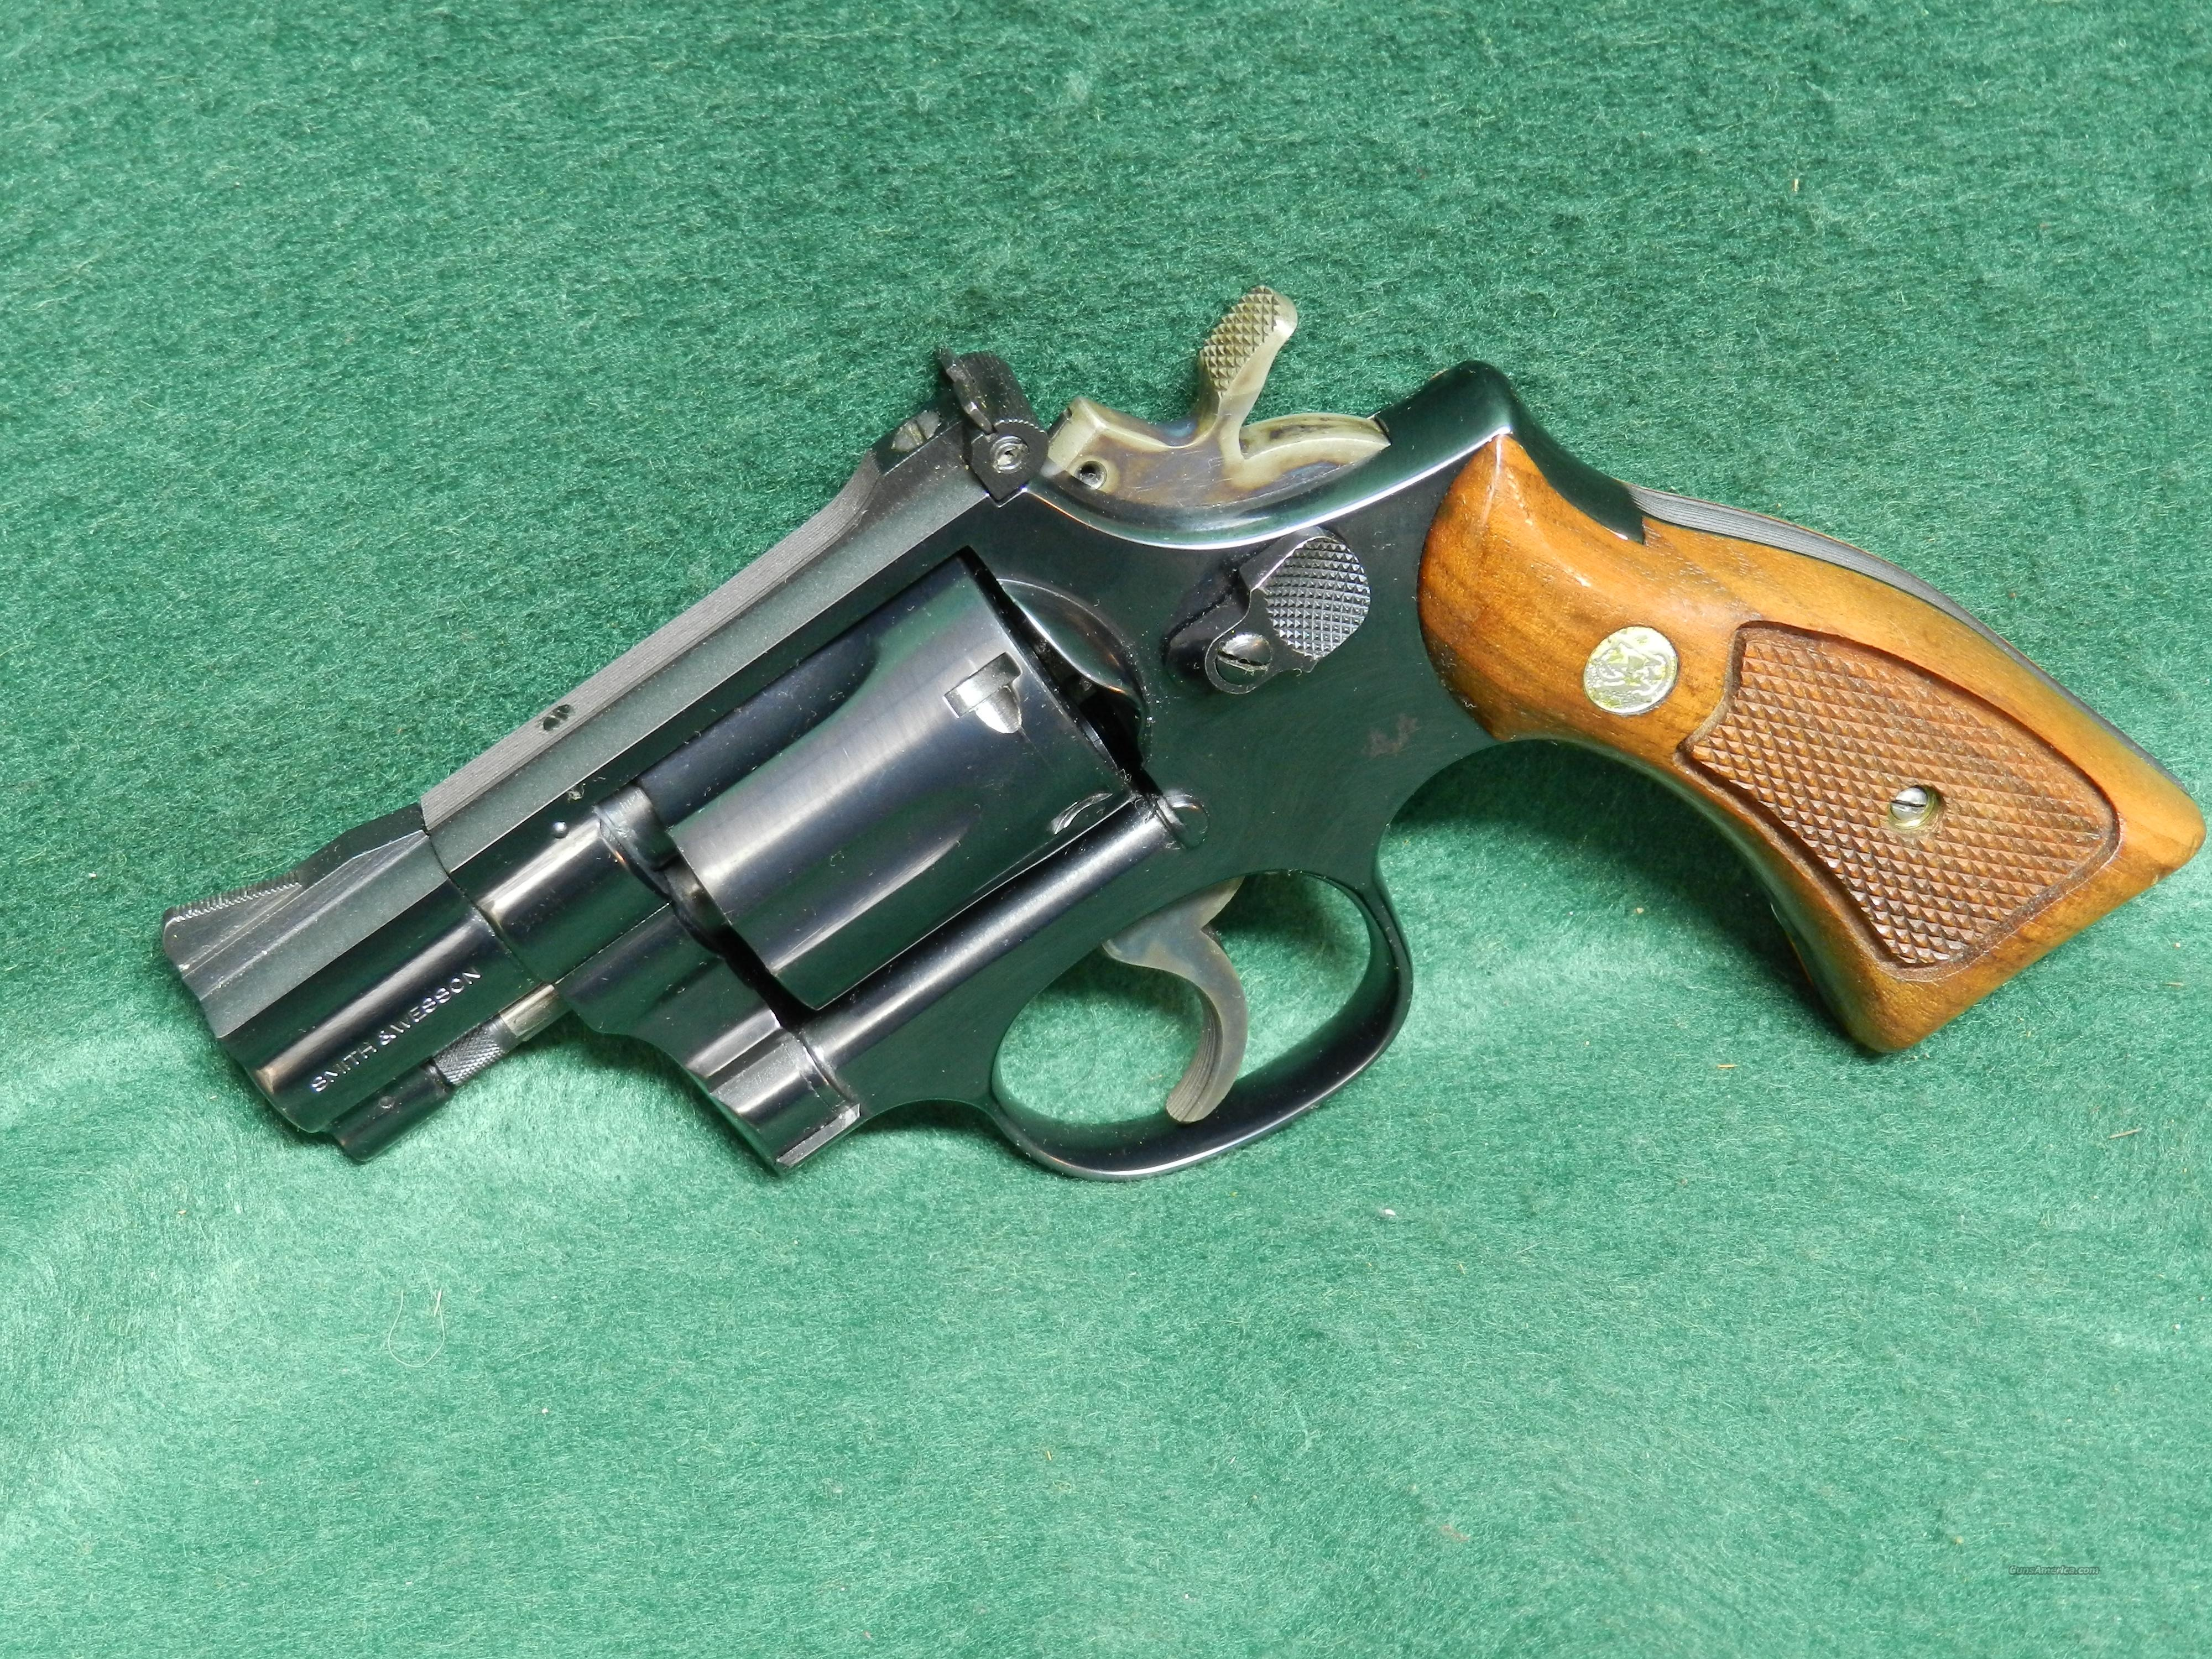 Smith & Wesson 15-3 K-38 Combat Masterpiece  Guns > Pistols > Smith & Wesson Revolvers > Full Frame Revolver